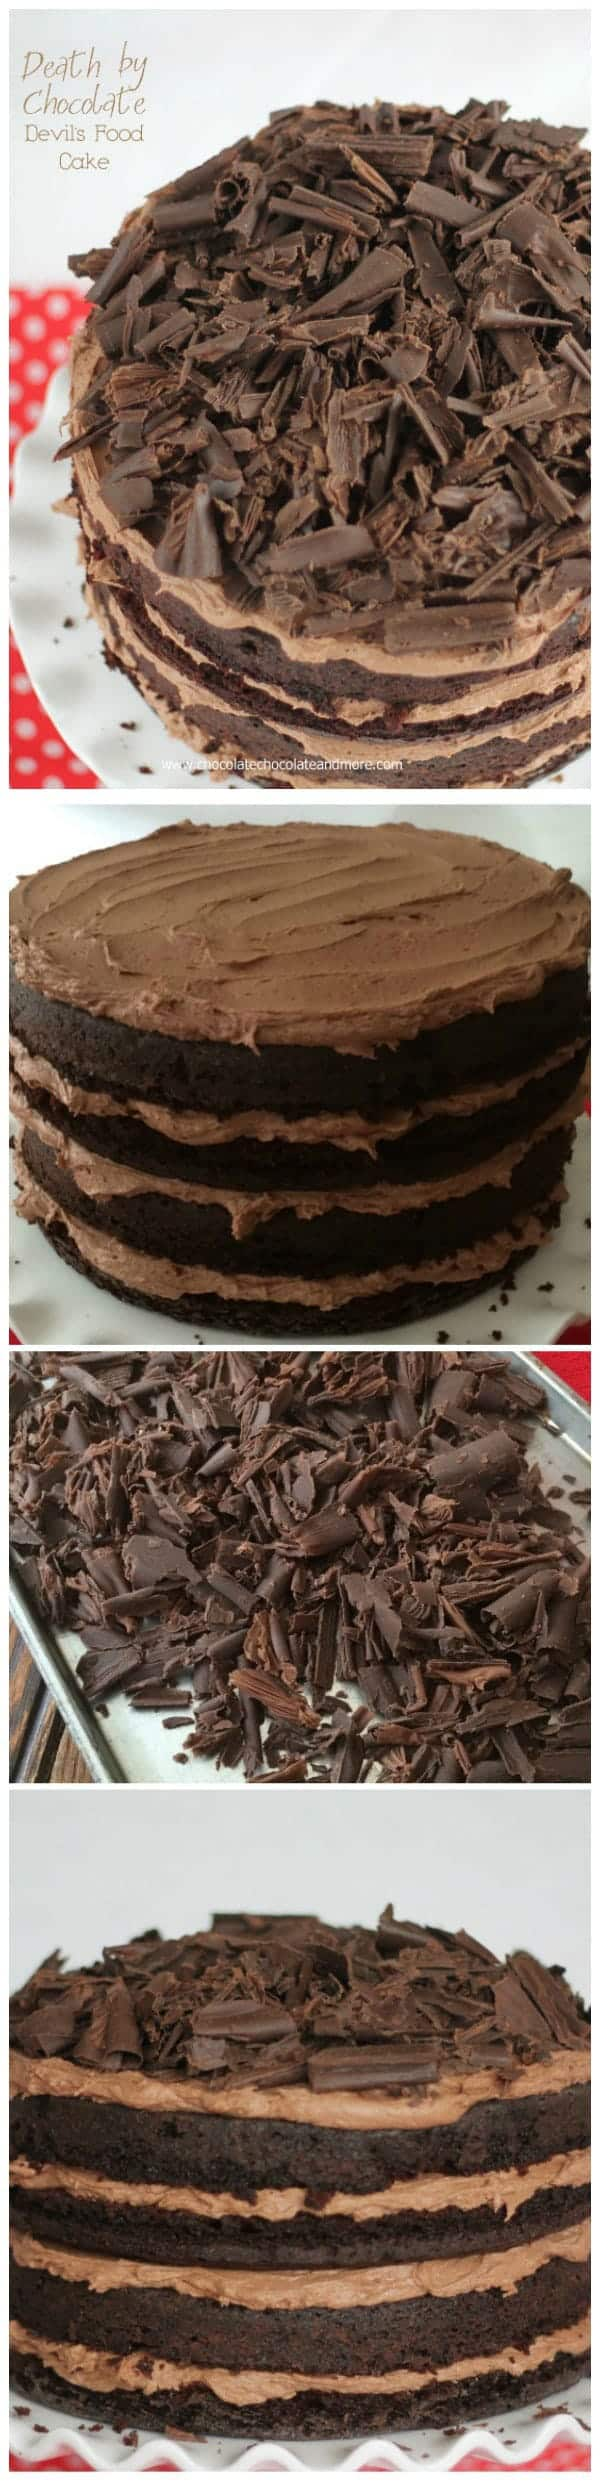 Death by Chocolate-Devil's Food Cake